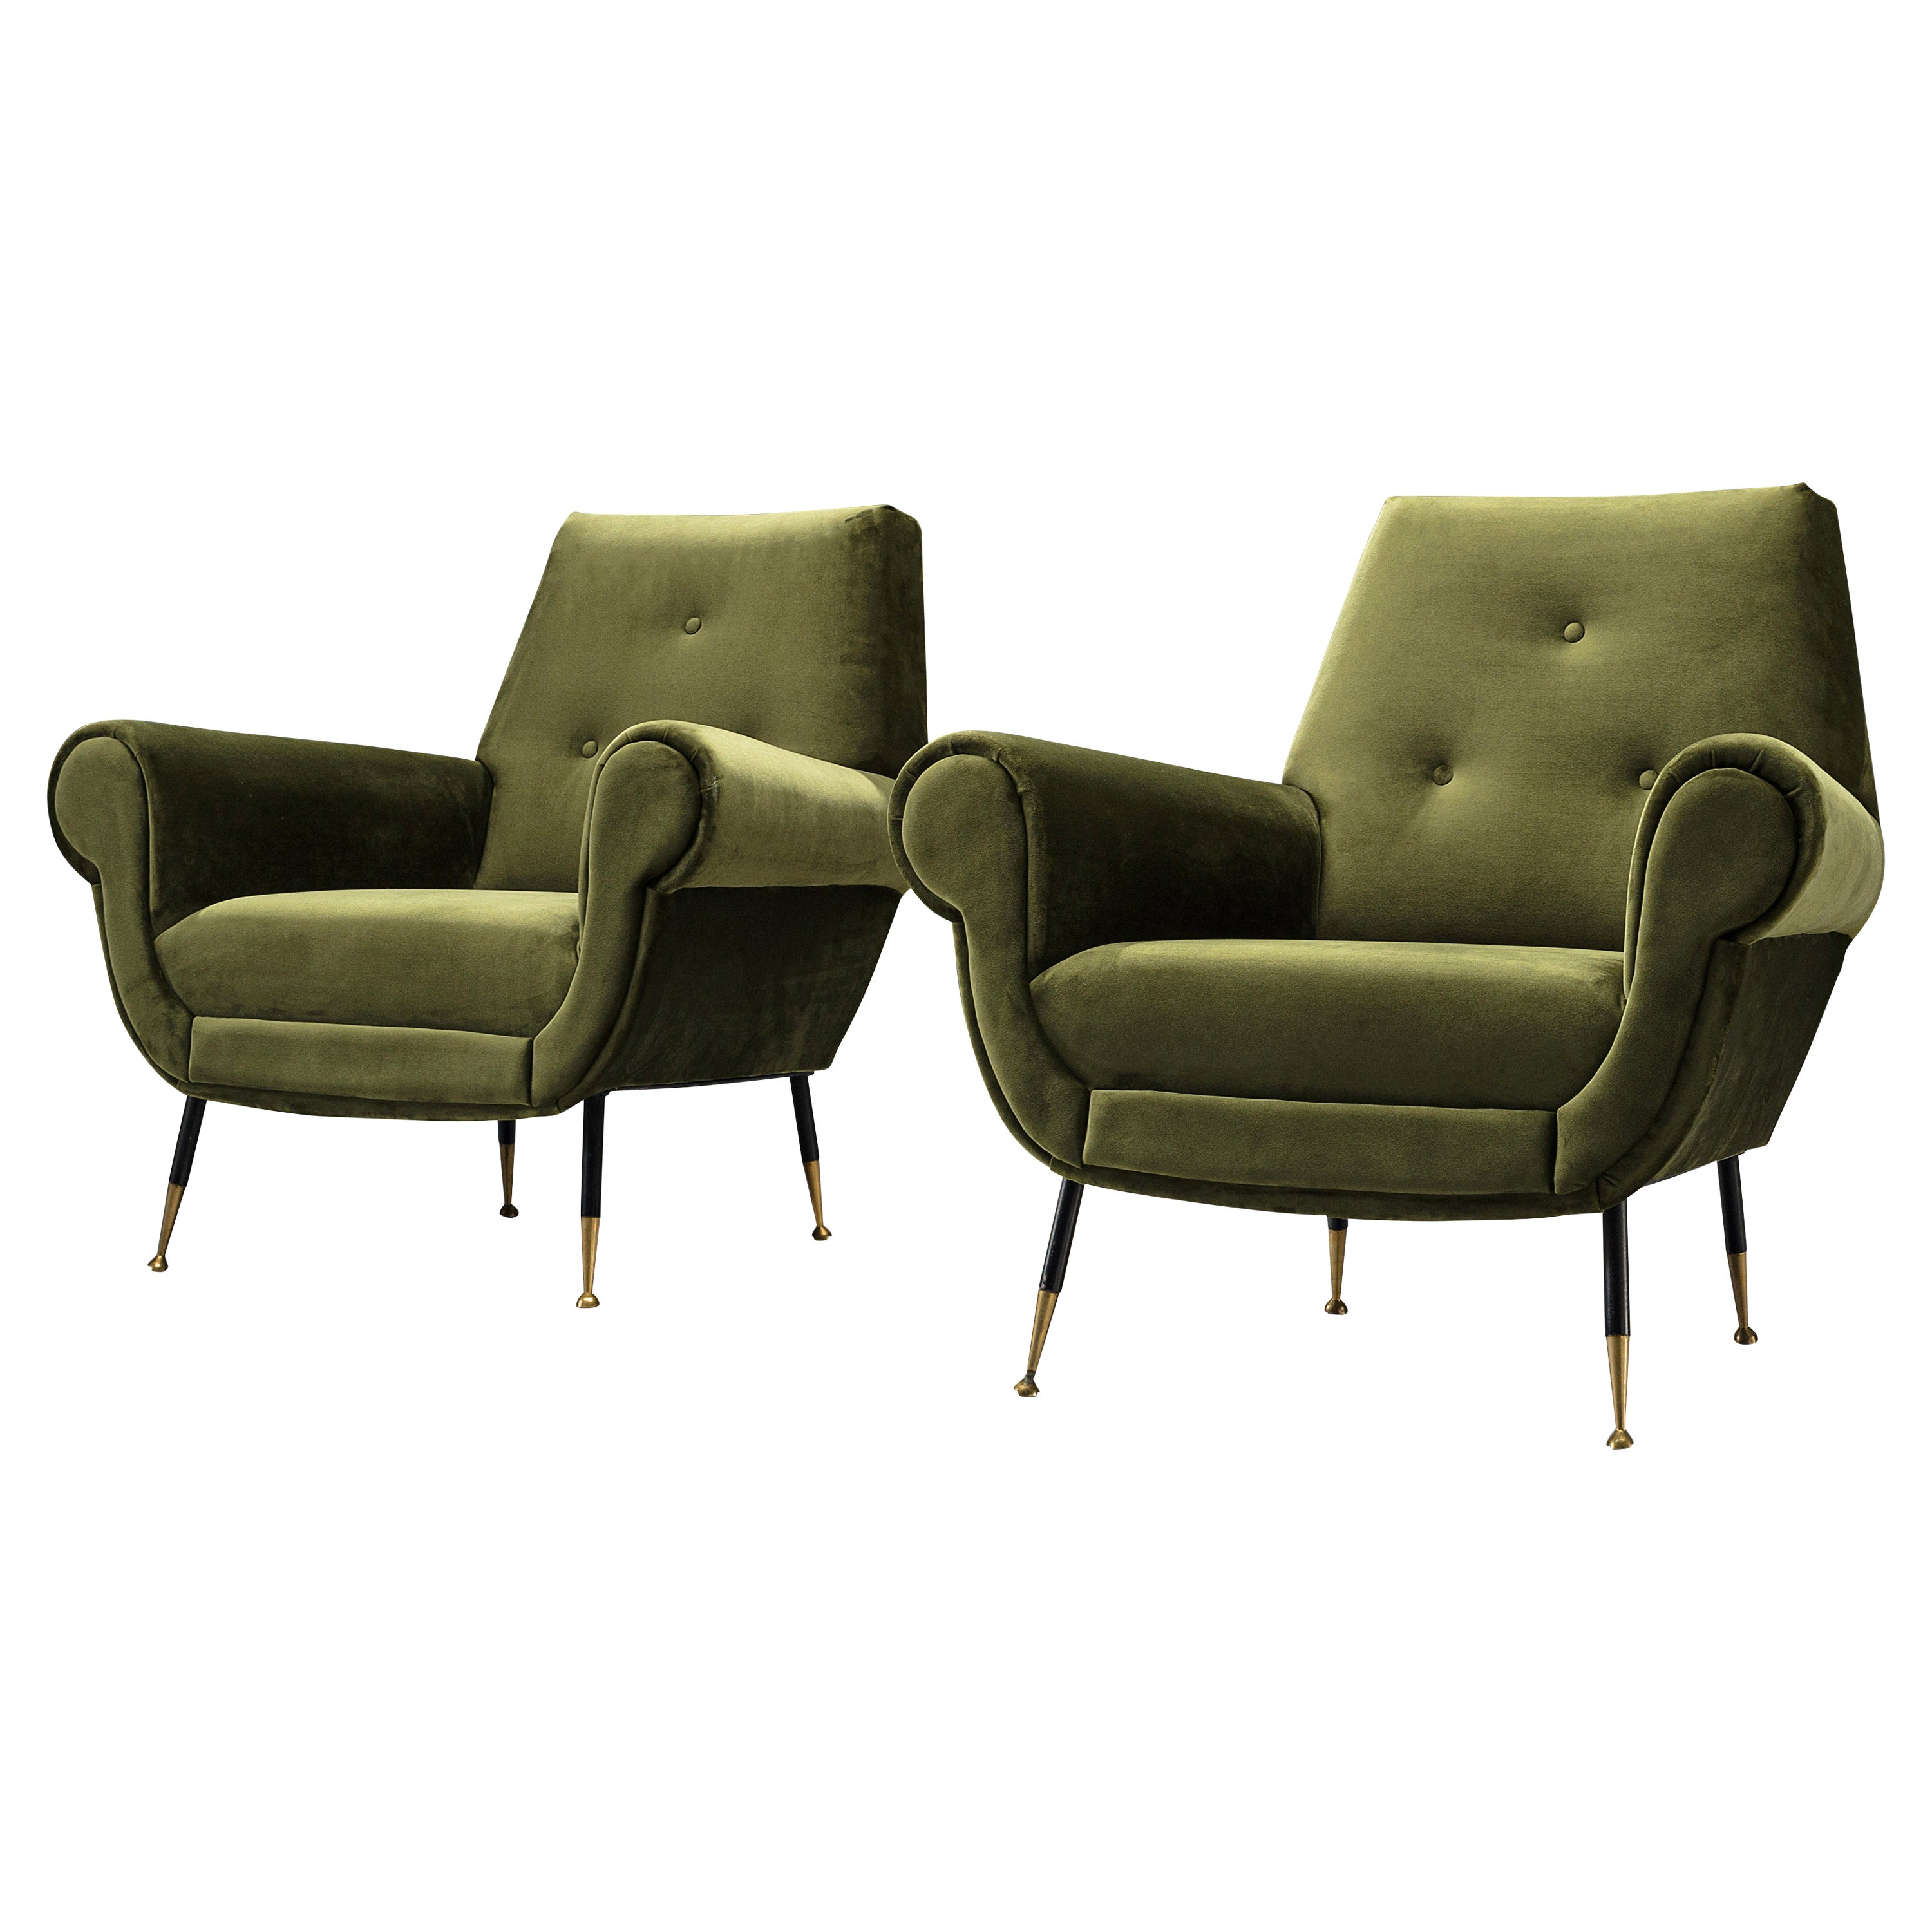 Italian Lounge Chairs in Green Velvet Upholstery and Brass